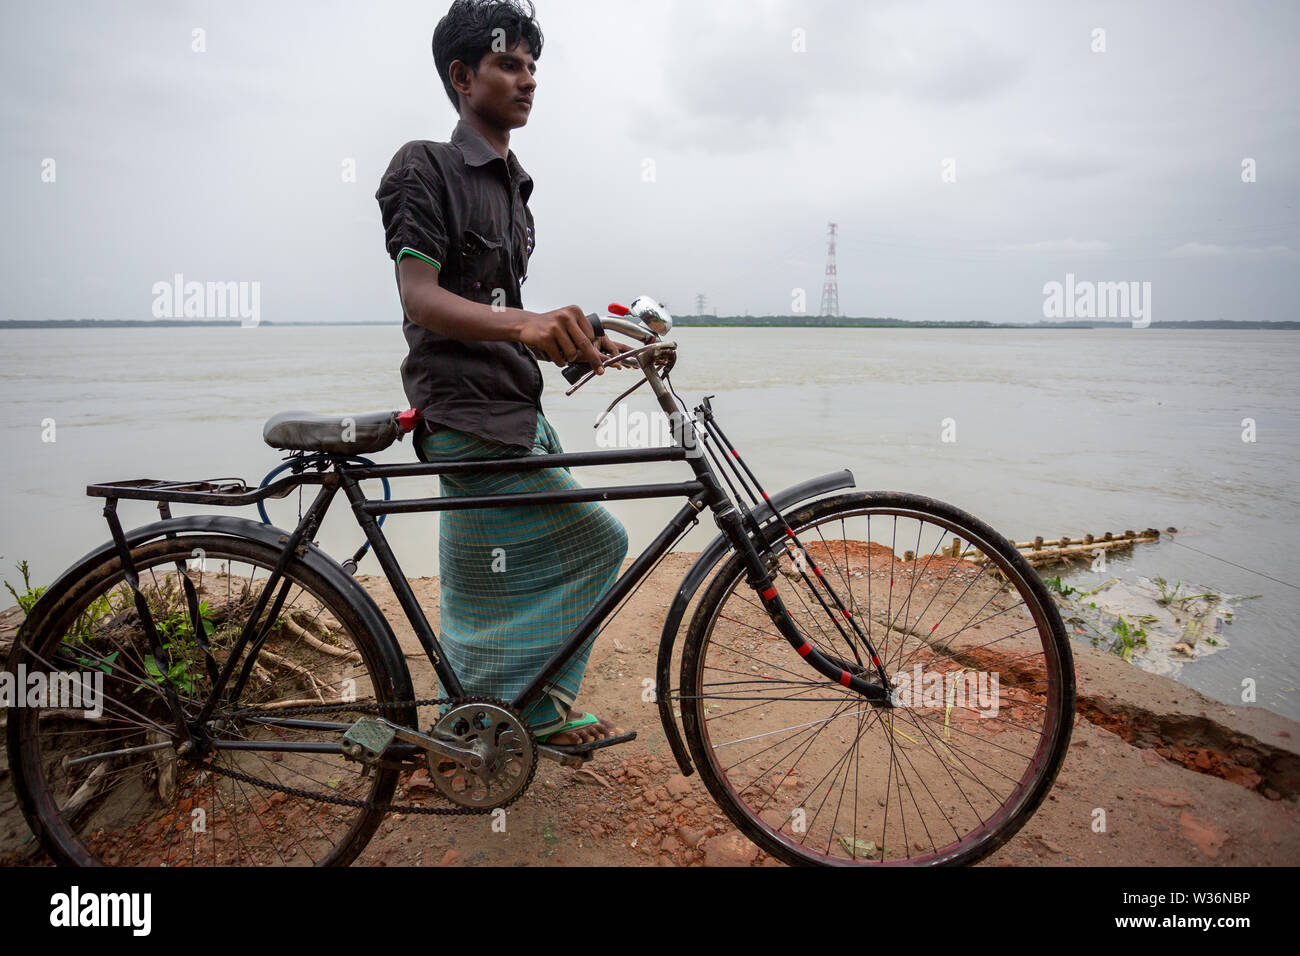 Bangladesh – June 27, 2015: A bicycle boy are stuck on the way due to river erosion at Rasulpur, Barisal District. - Stock Image